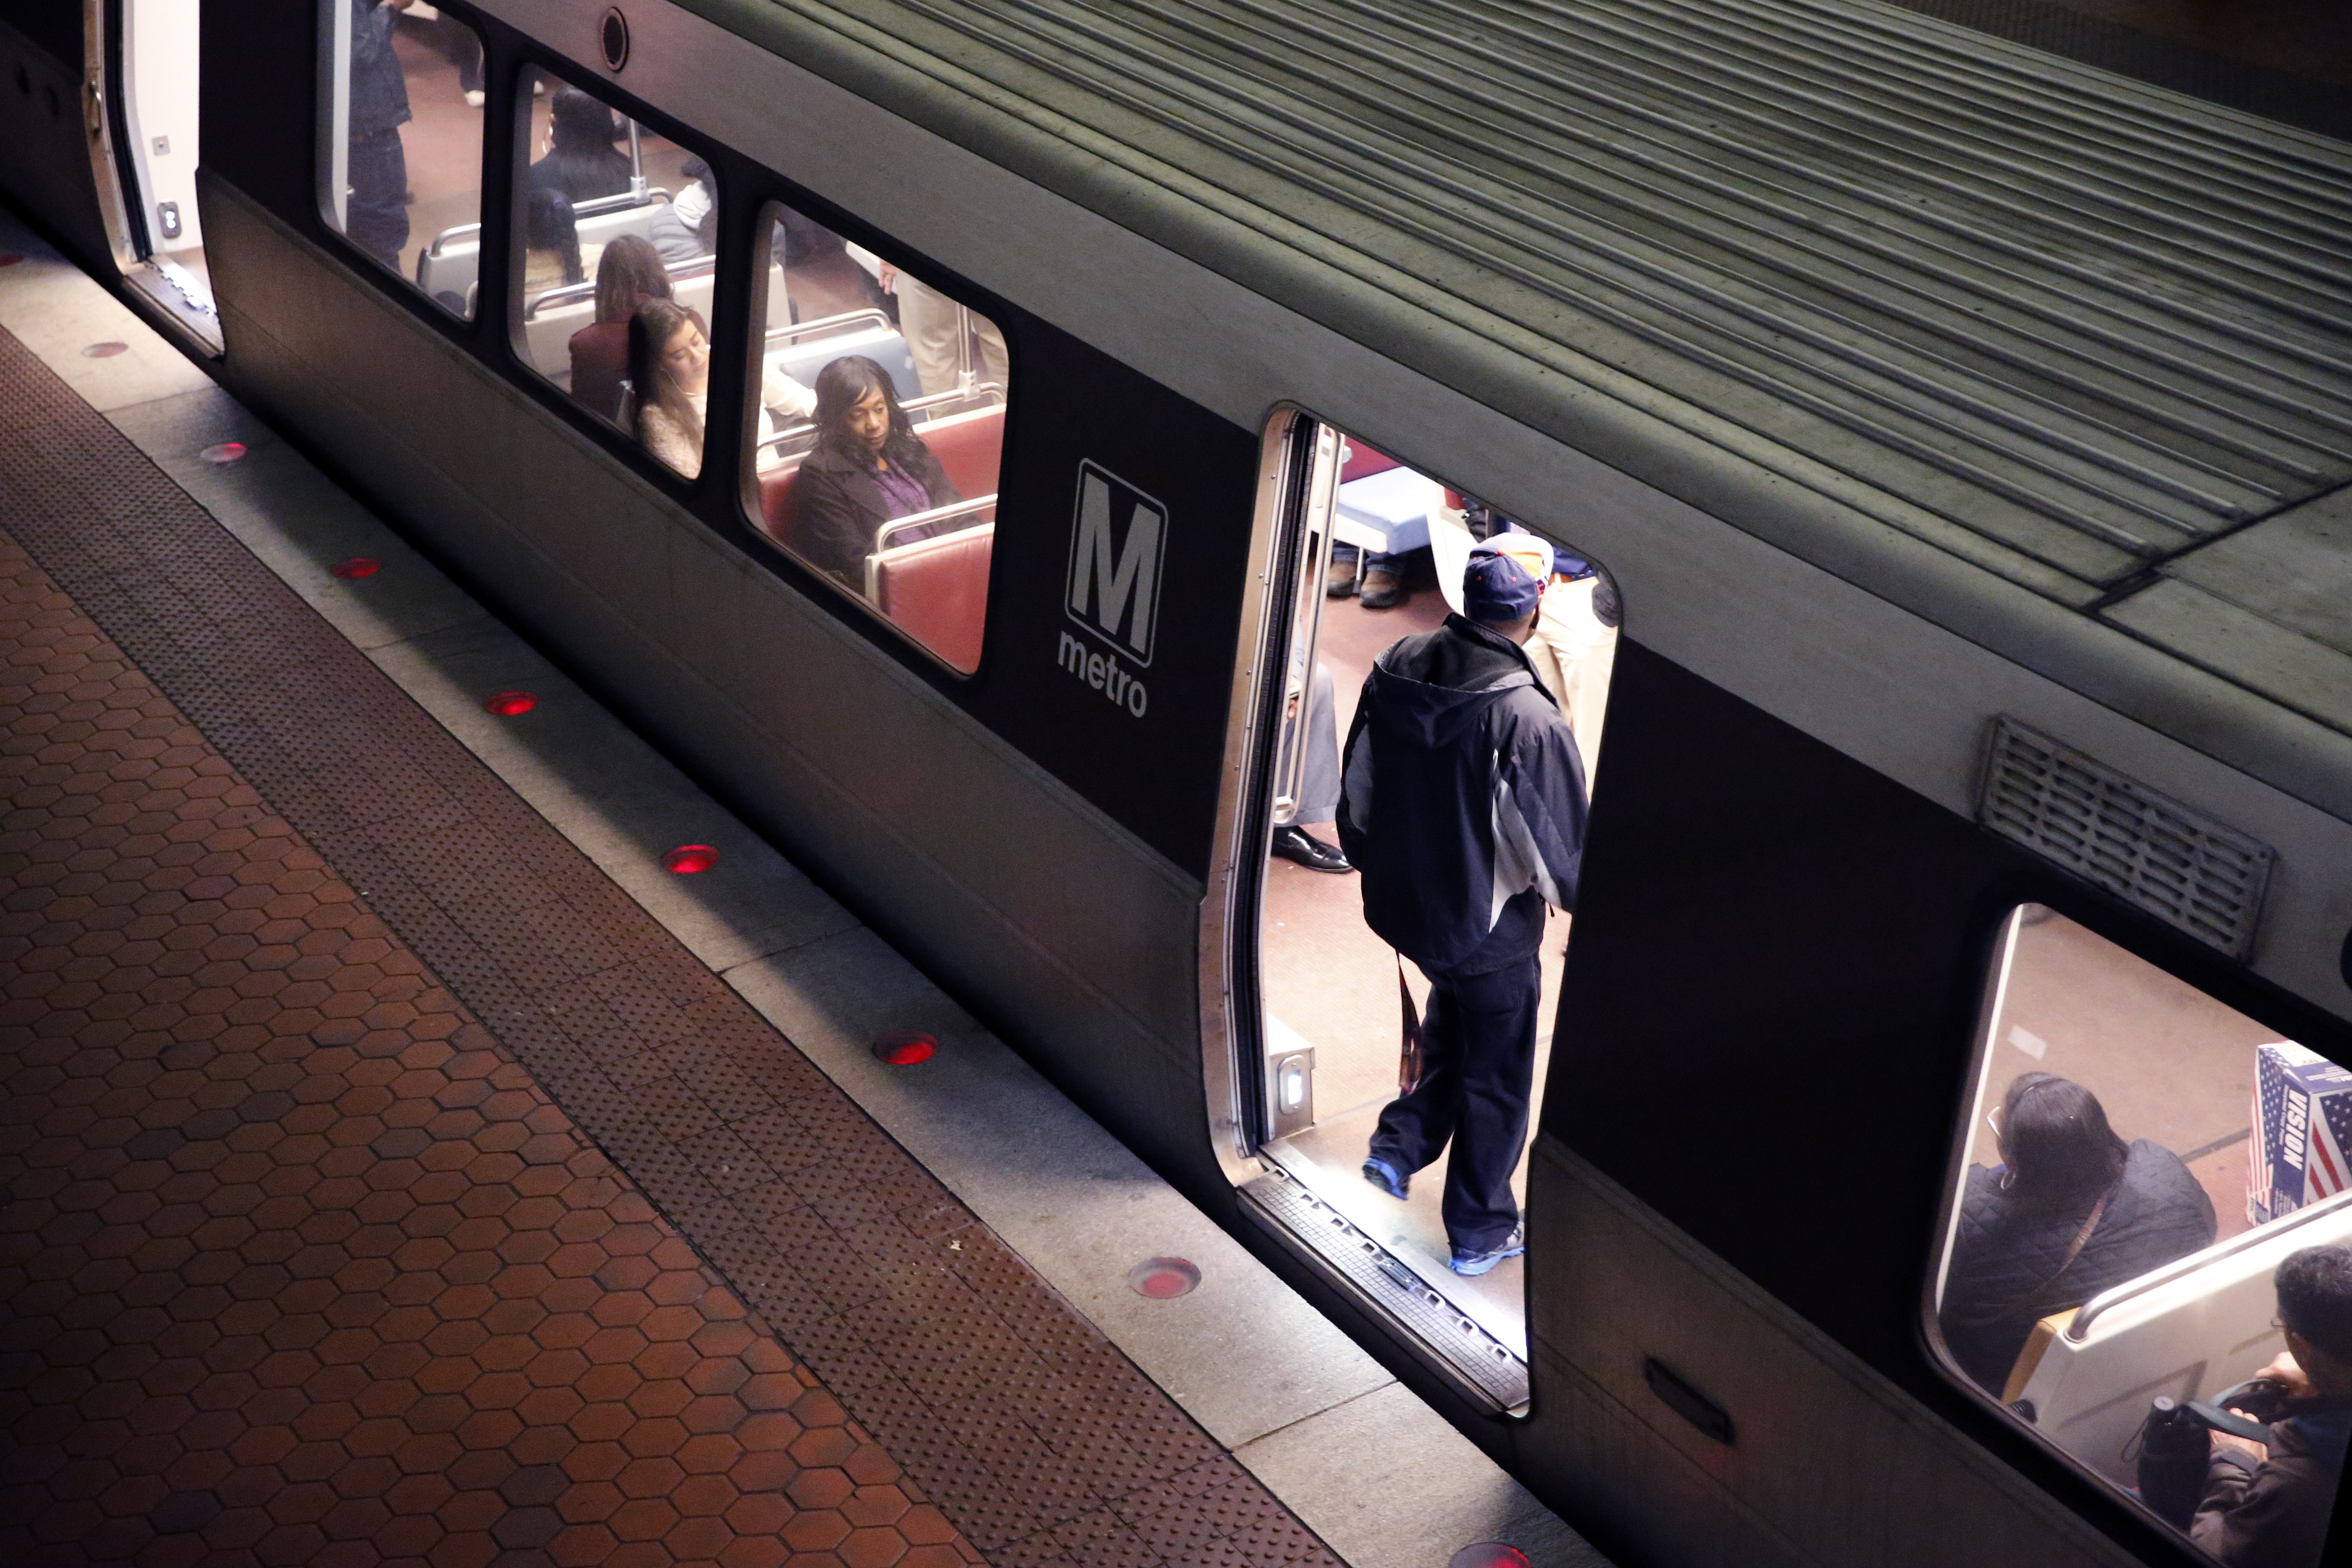 Consultant to Metro: Arrive on time, then focus on bigger picture